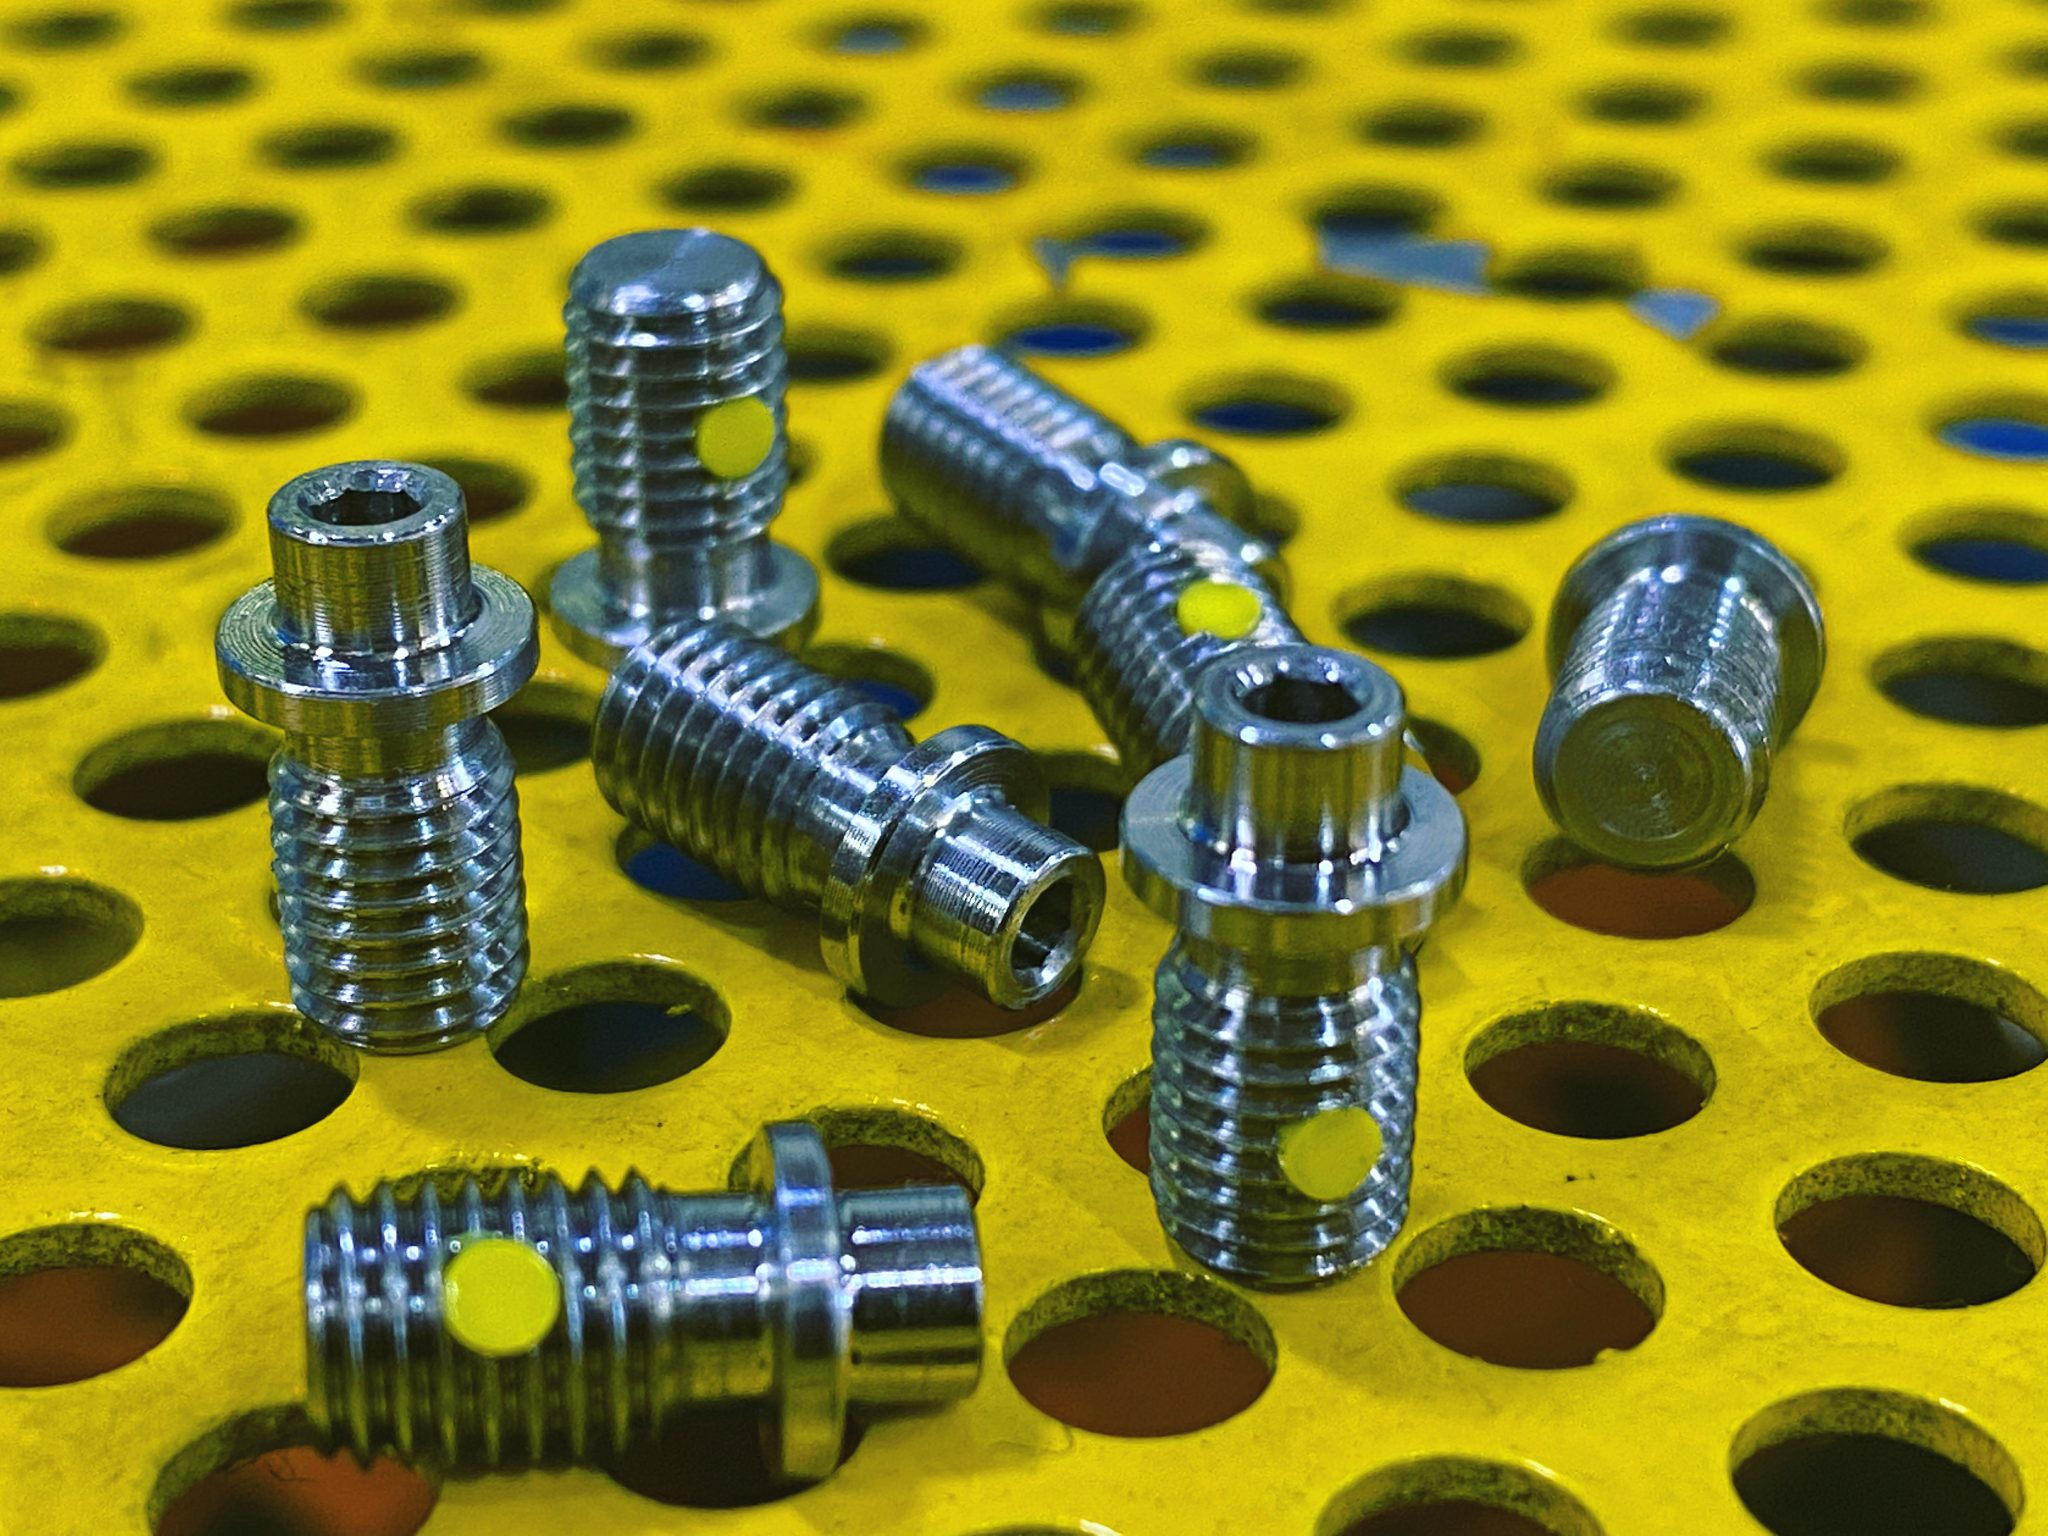 1/4(28) x 14mm Valve Screw 410 stainless with locking pellet